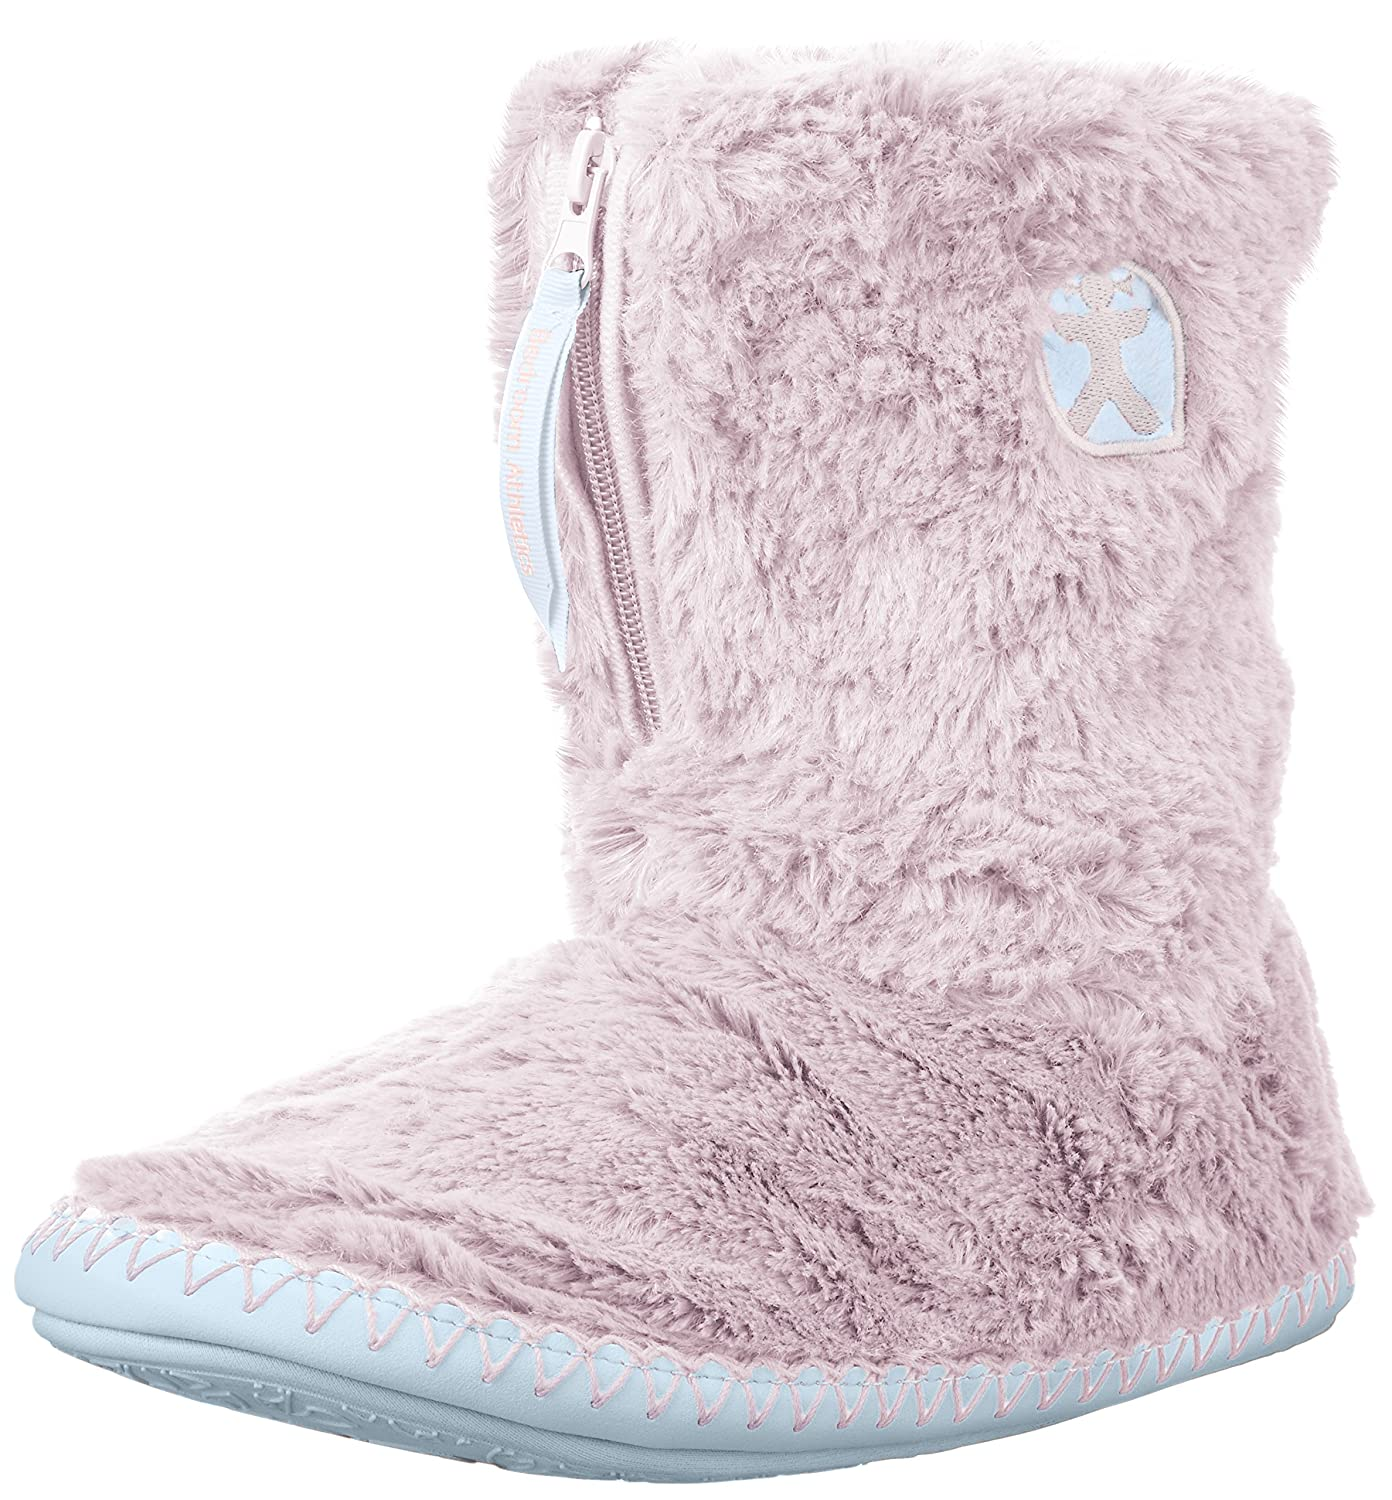 slipper various brand pink p online athletics onlinevarious check bedroom women shoes boots top wholesale macgraw styles